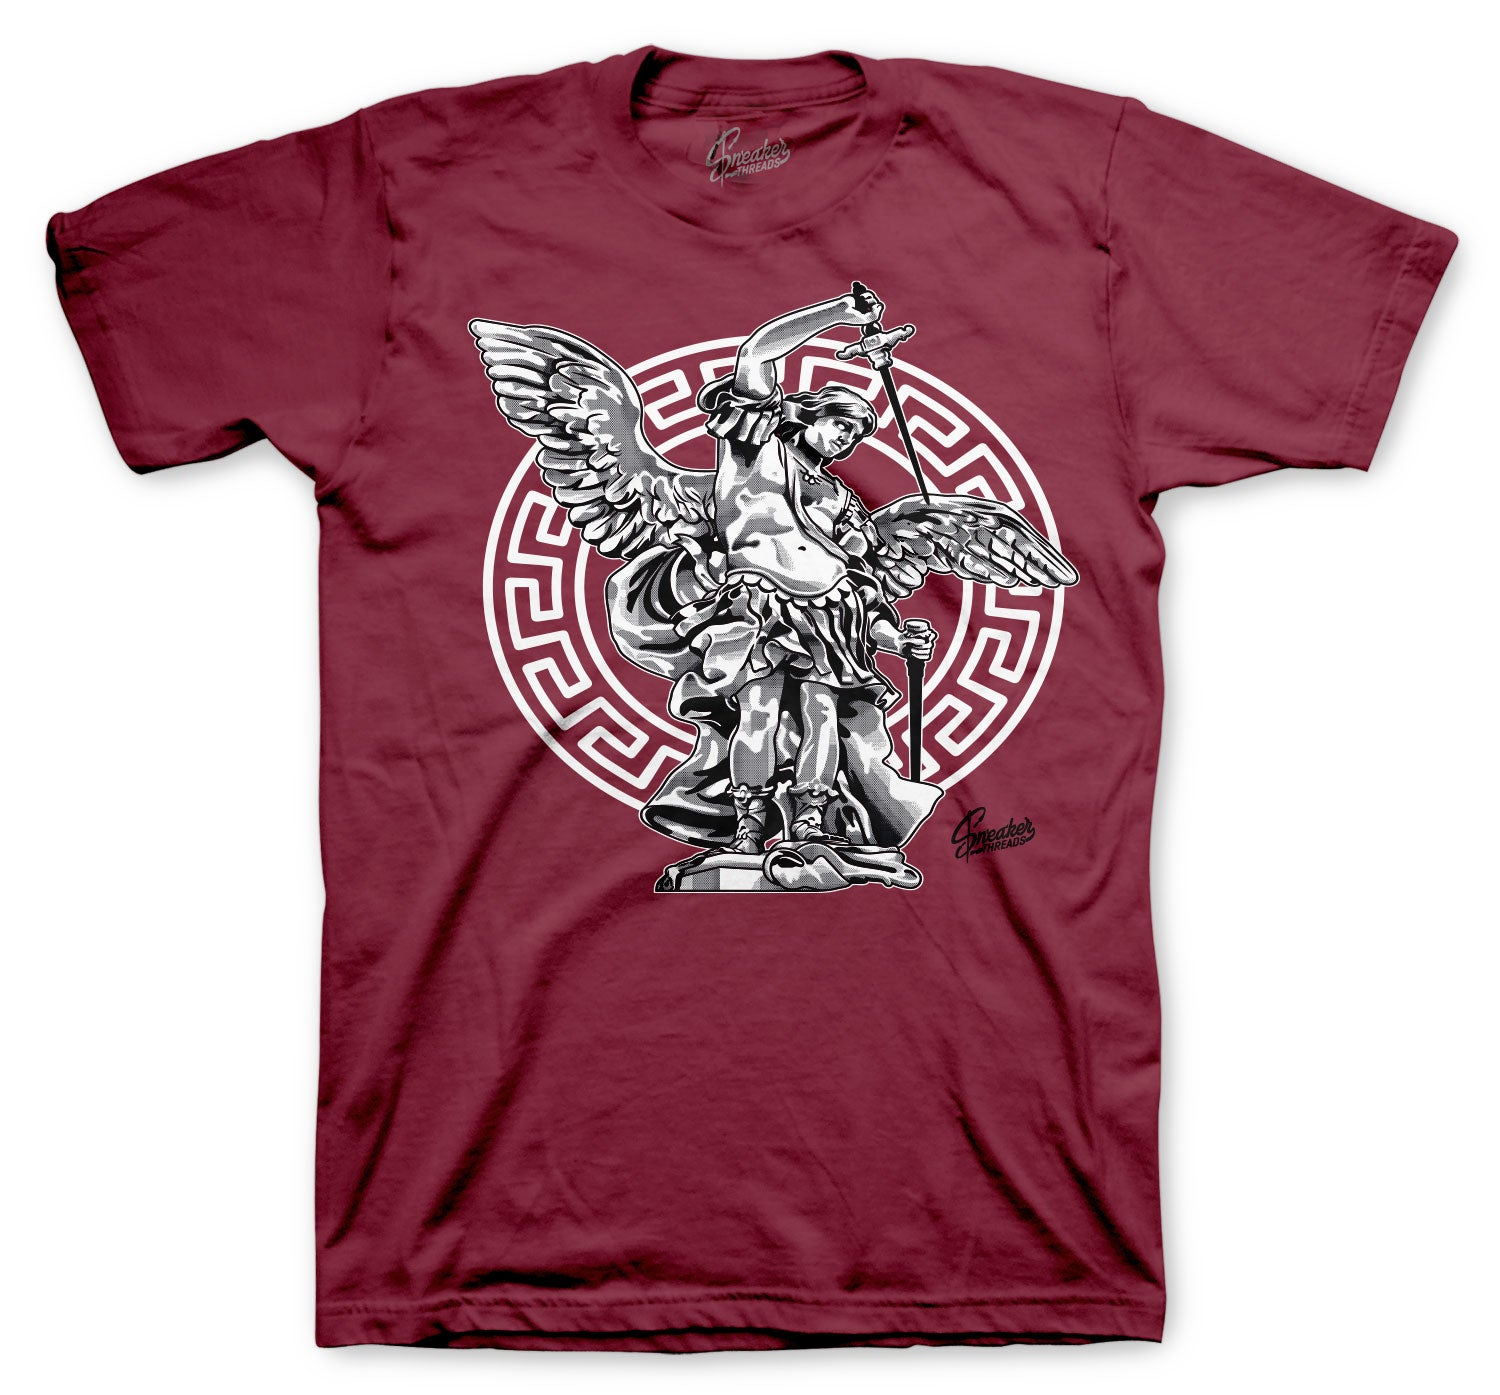 Jordan 6 Singles Day Shirt - Saint Michael - Maroon